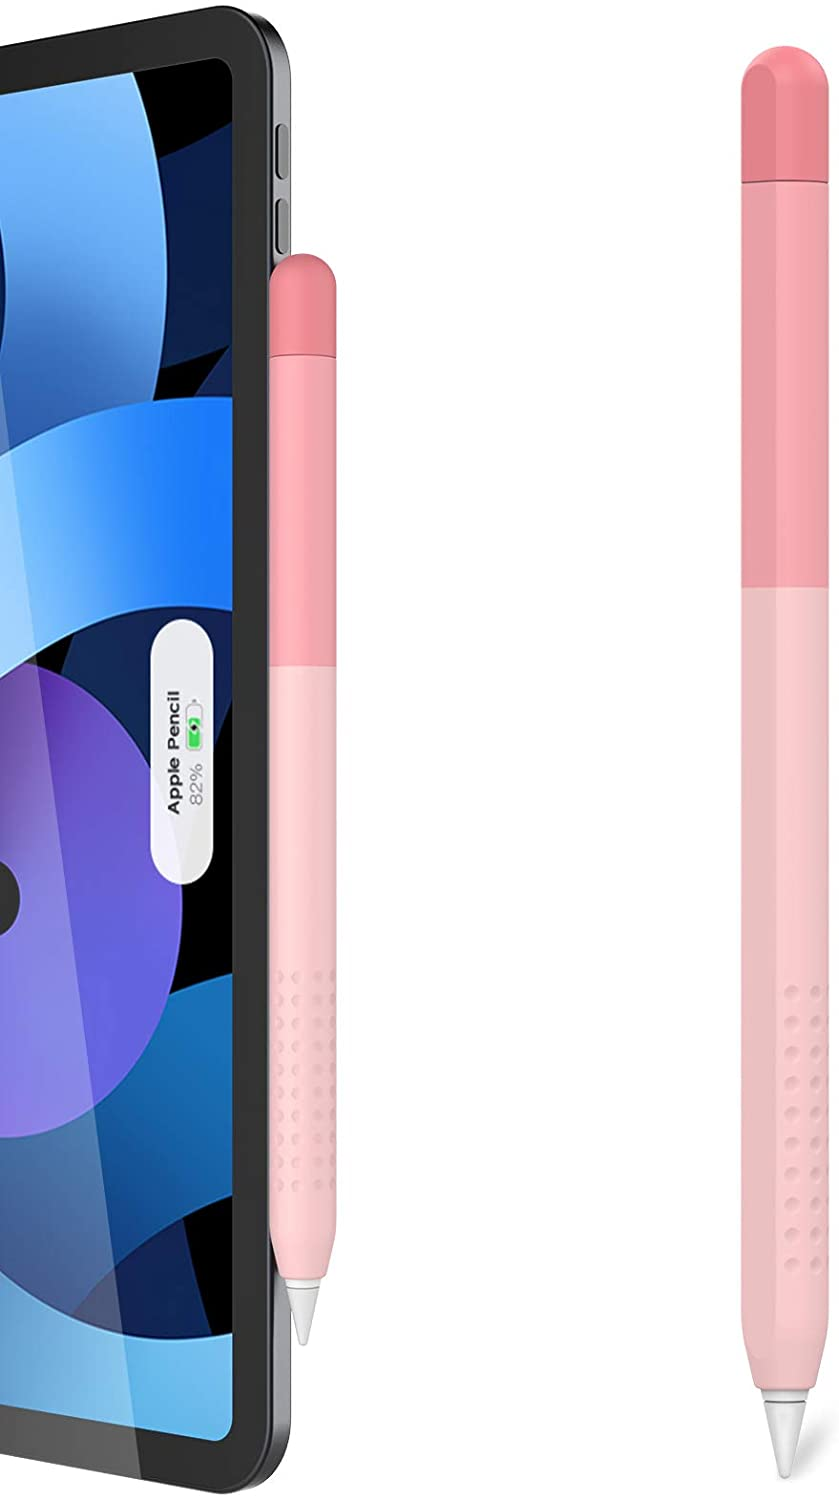 Delidigi Gradient Color iPencil Case Sleeve Silicone Cover Accessories Compatible with Apple Pencil 2nd Generation(Gradient Pink)